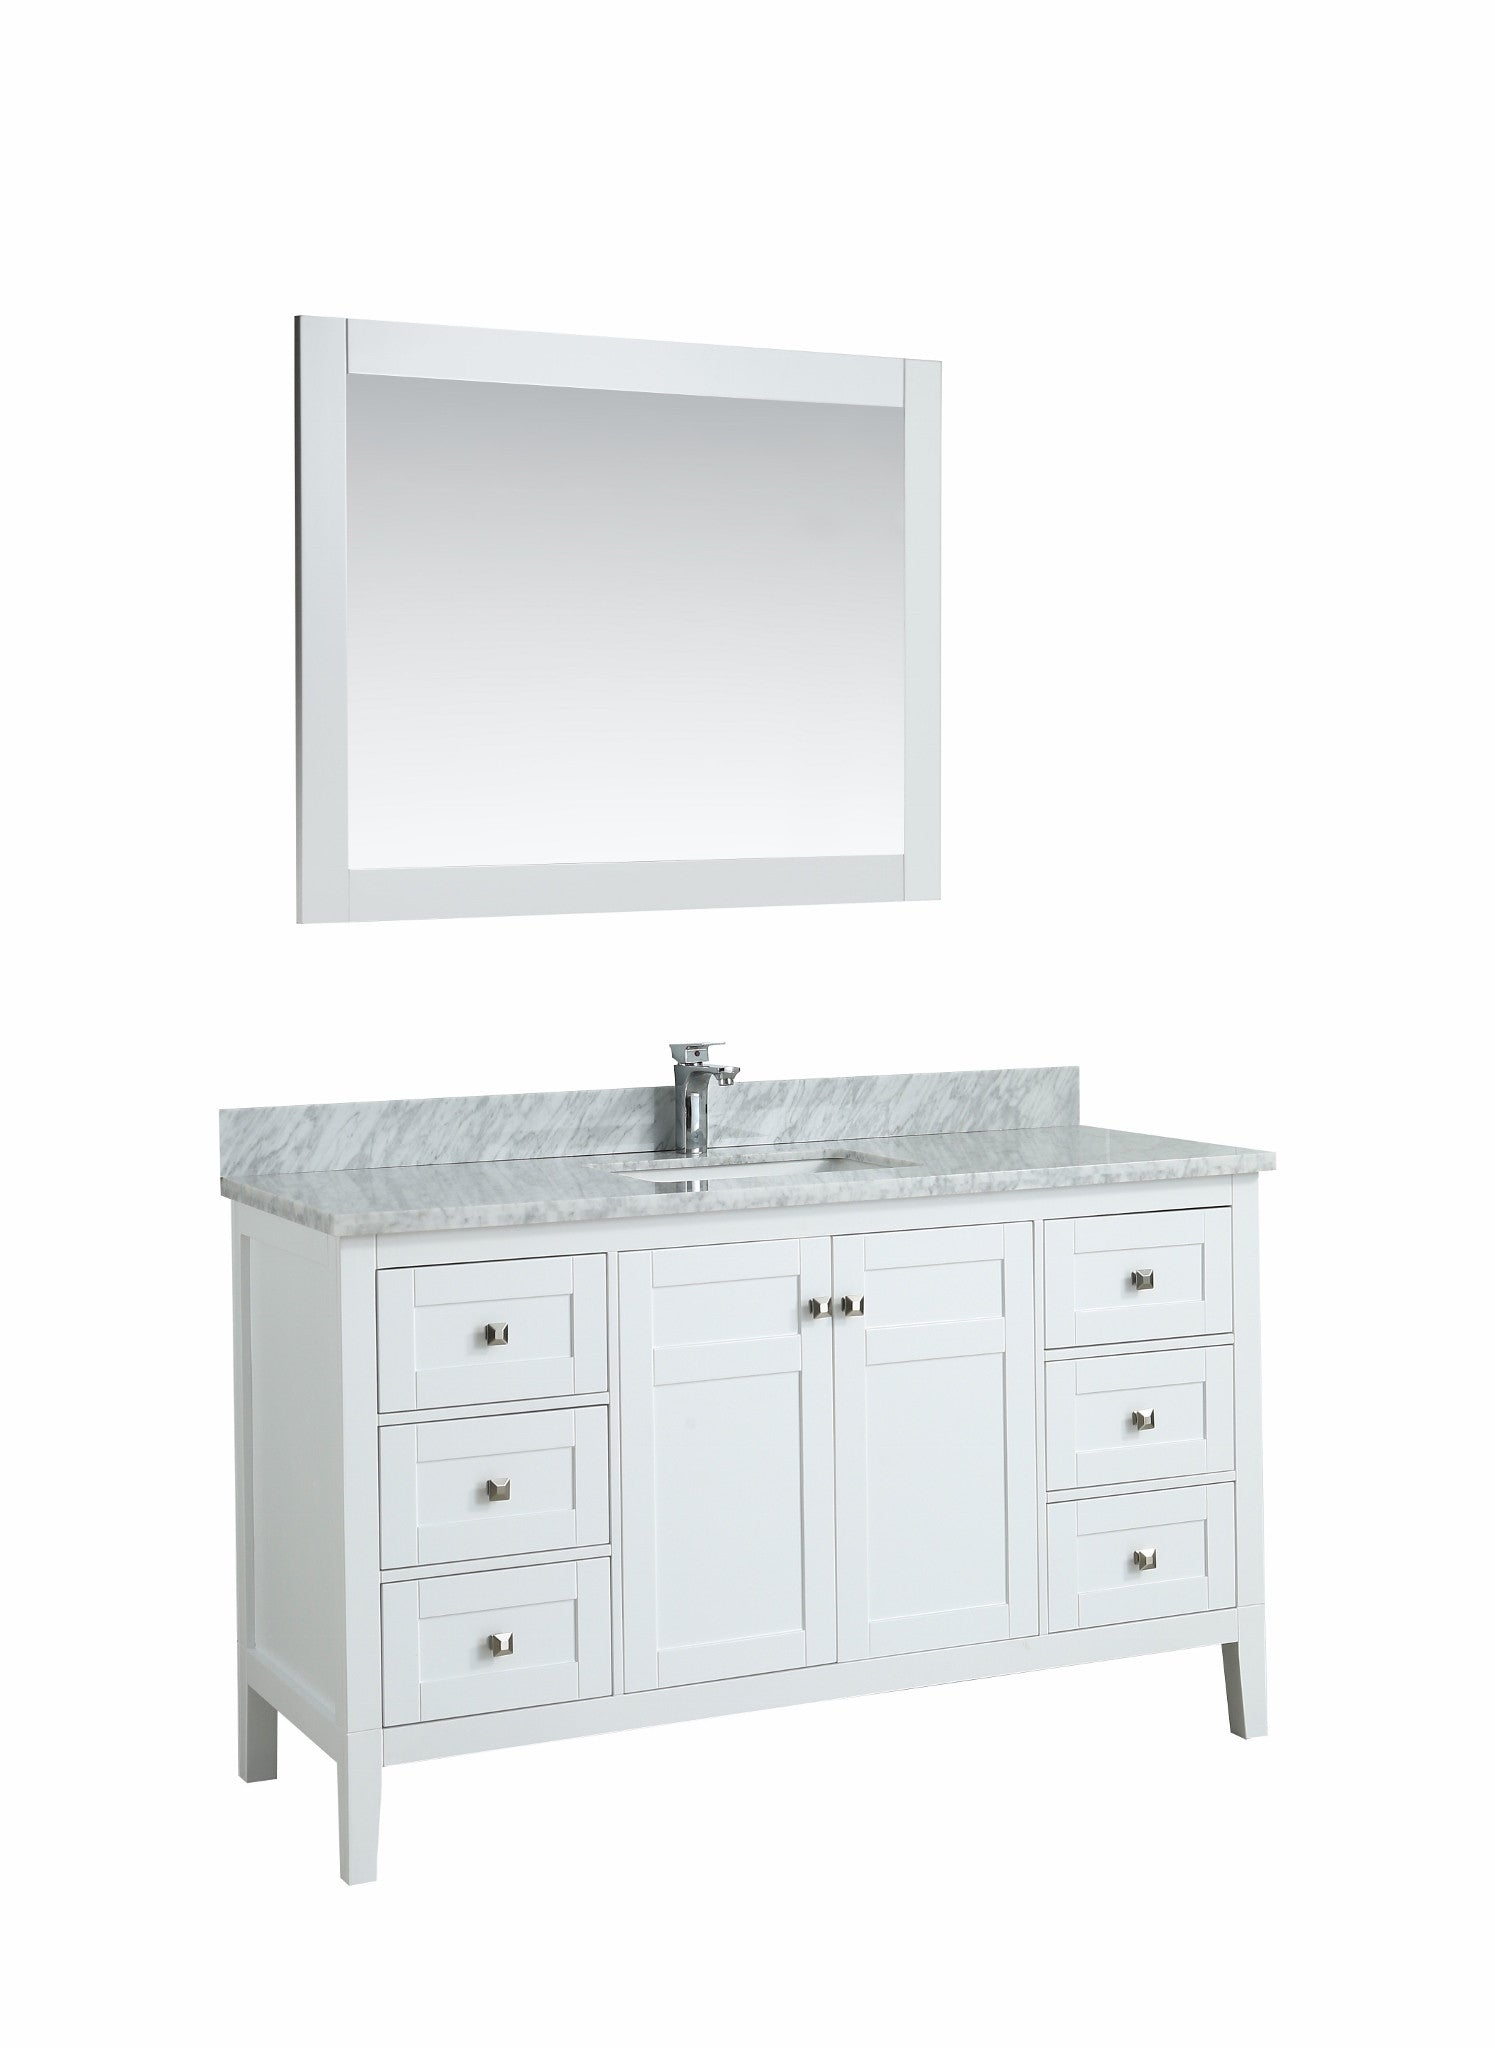 Keatley Bathroom Vanity in Toga White - 60 Inch – Broadway Vanities